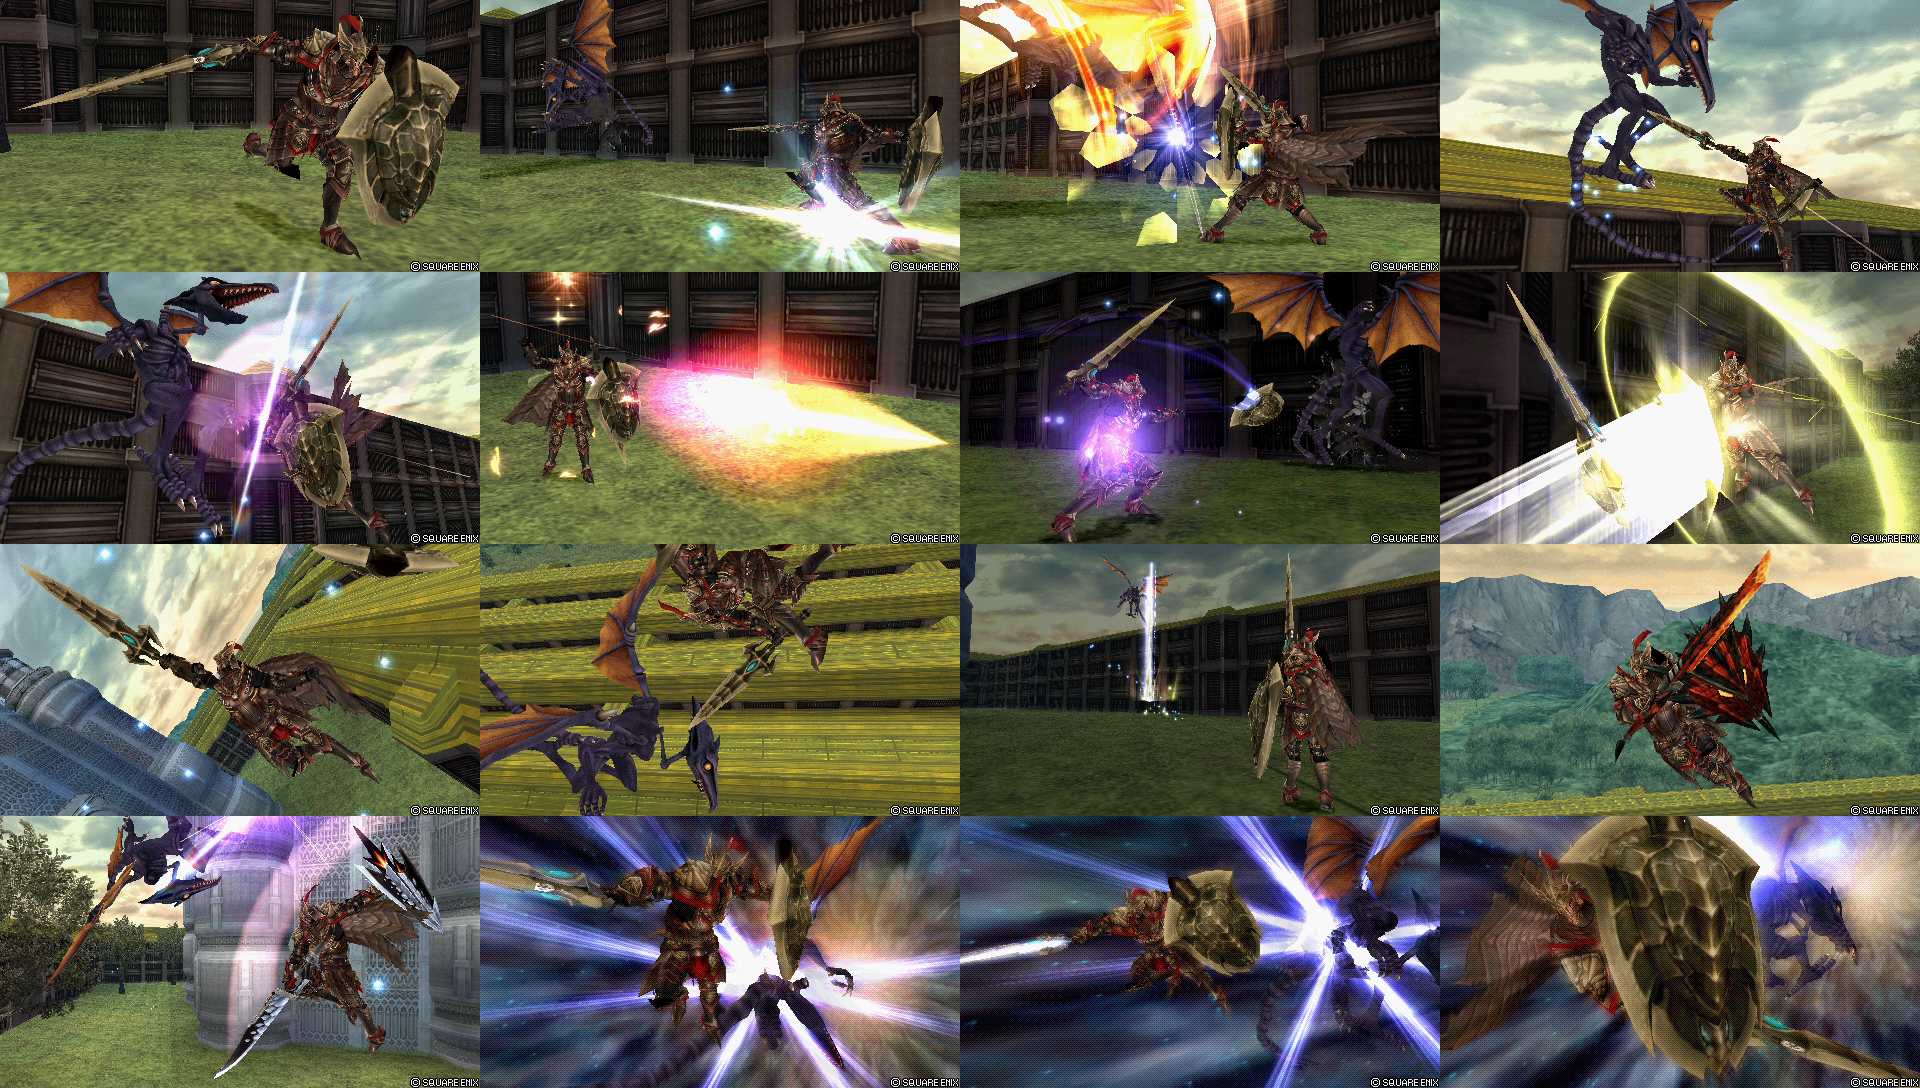 SatoshiKura's Mods: Hyrule Warriors Link released - Mods - Dissidia